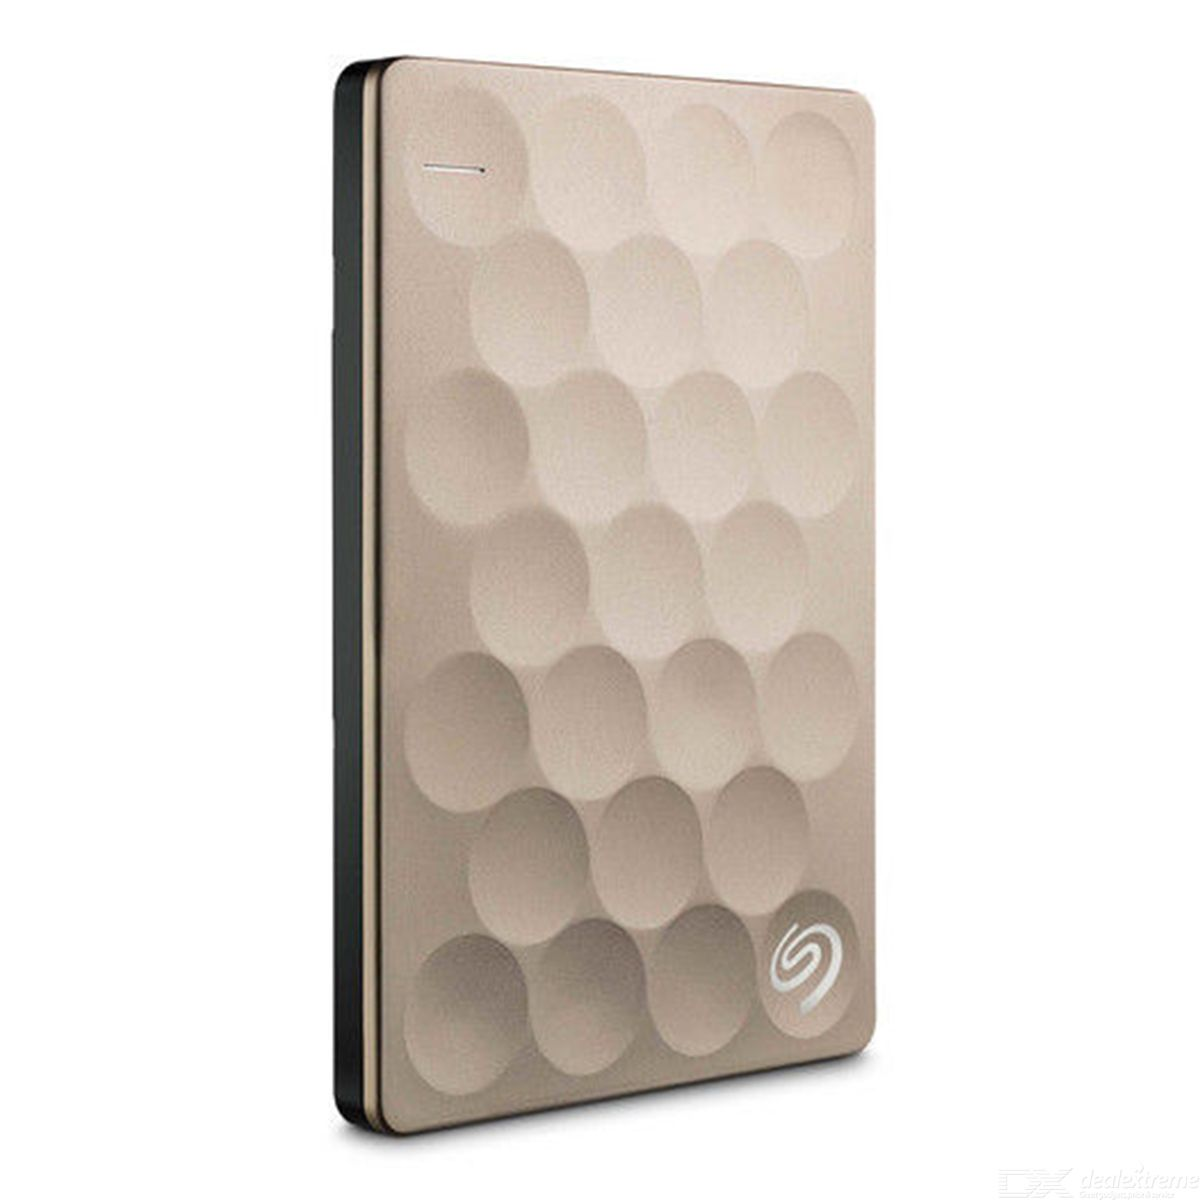 Seagate STEH2000301 Backup Plus 2.5quot Ultra Slim 2TB HDD Hard Disk Drive (Gold)